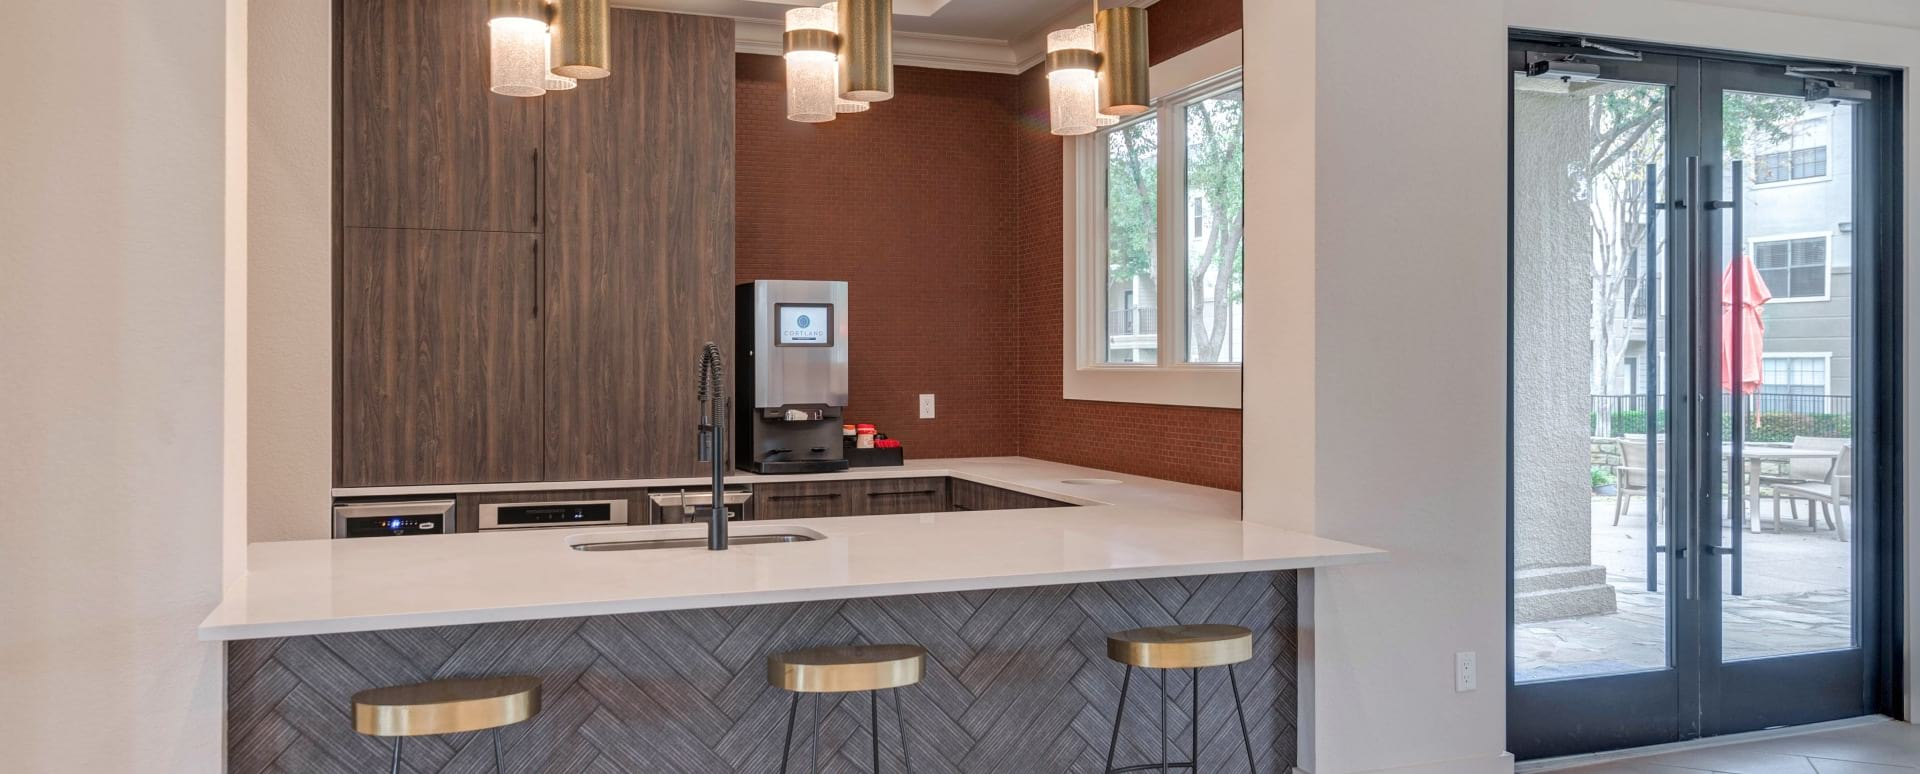 Cortland at Valley Ranch's resident lounge with party-ready kitchen